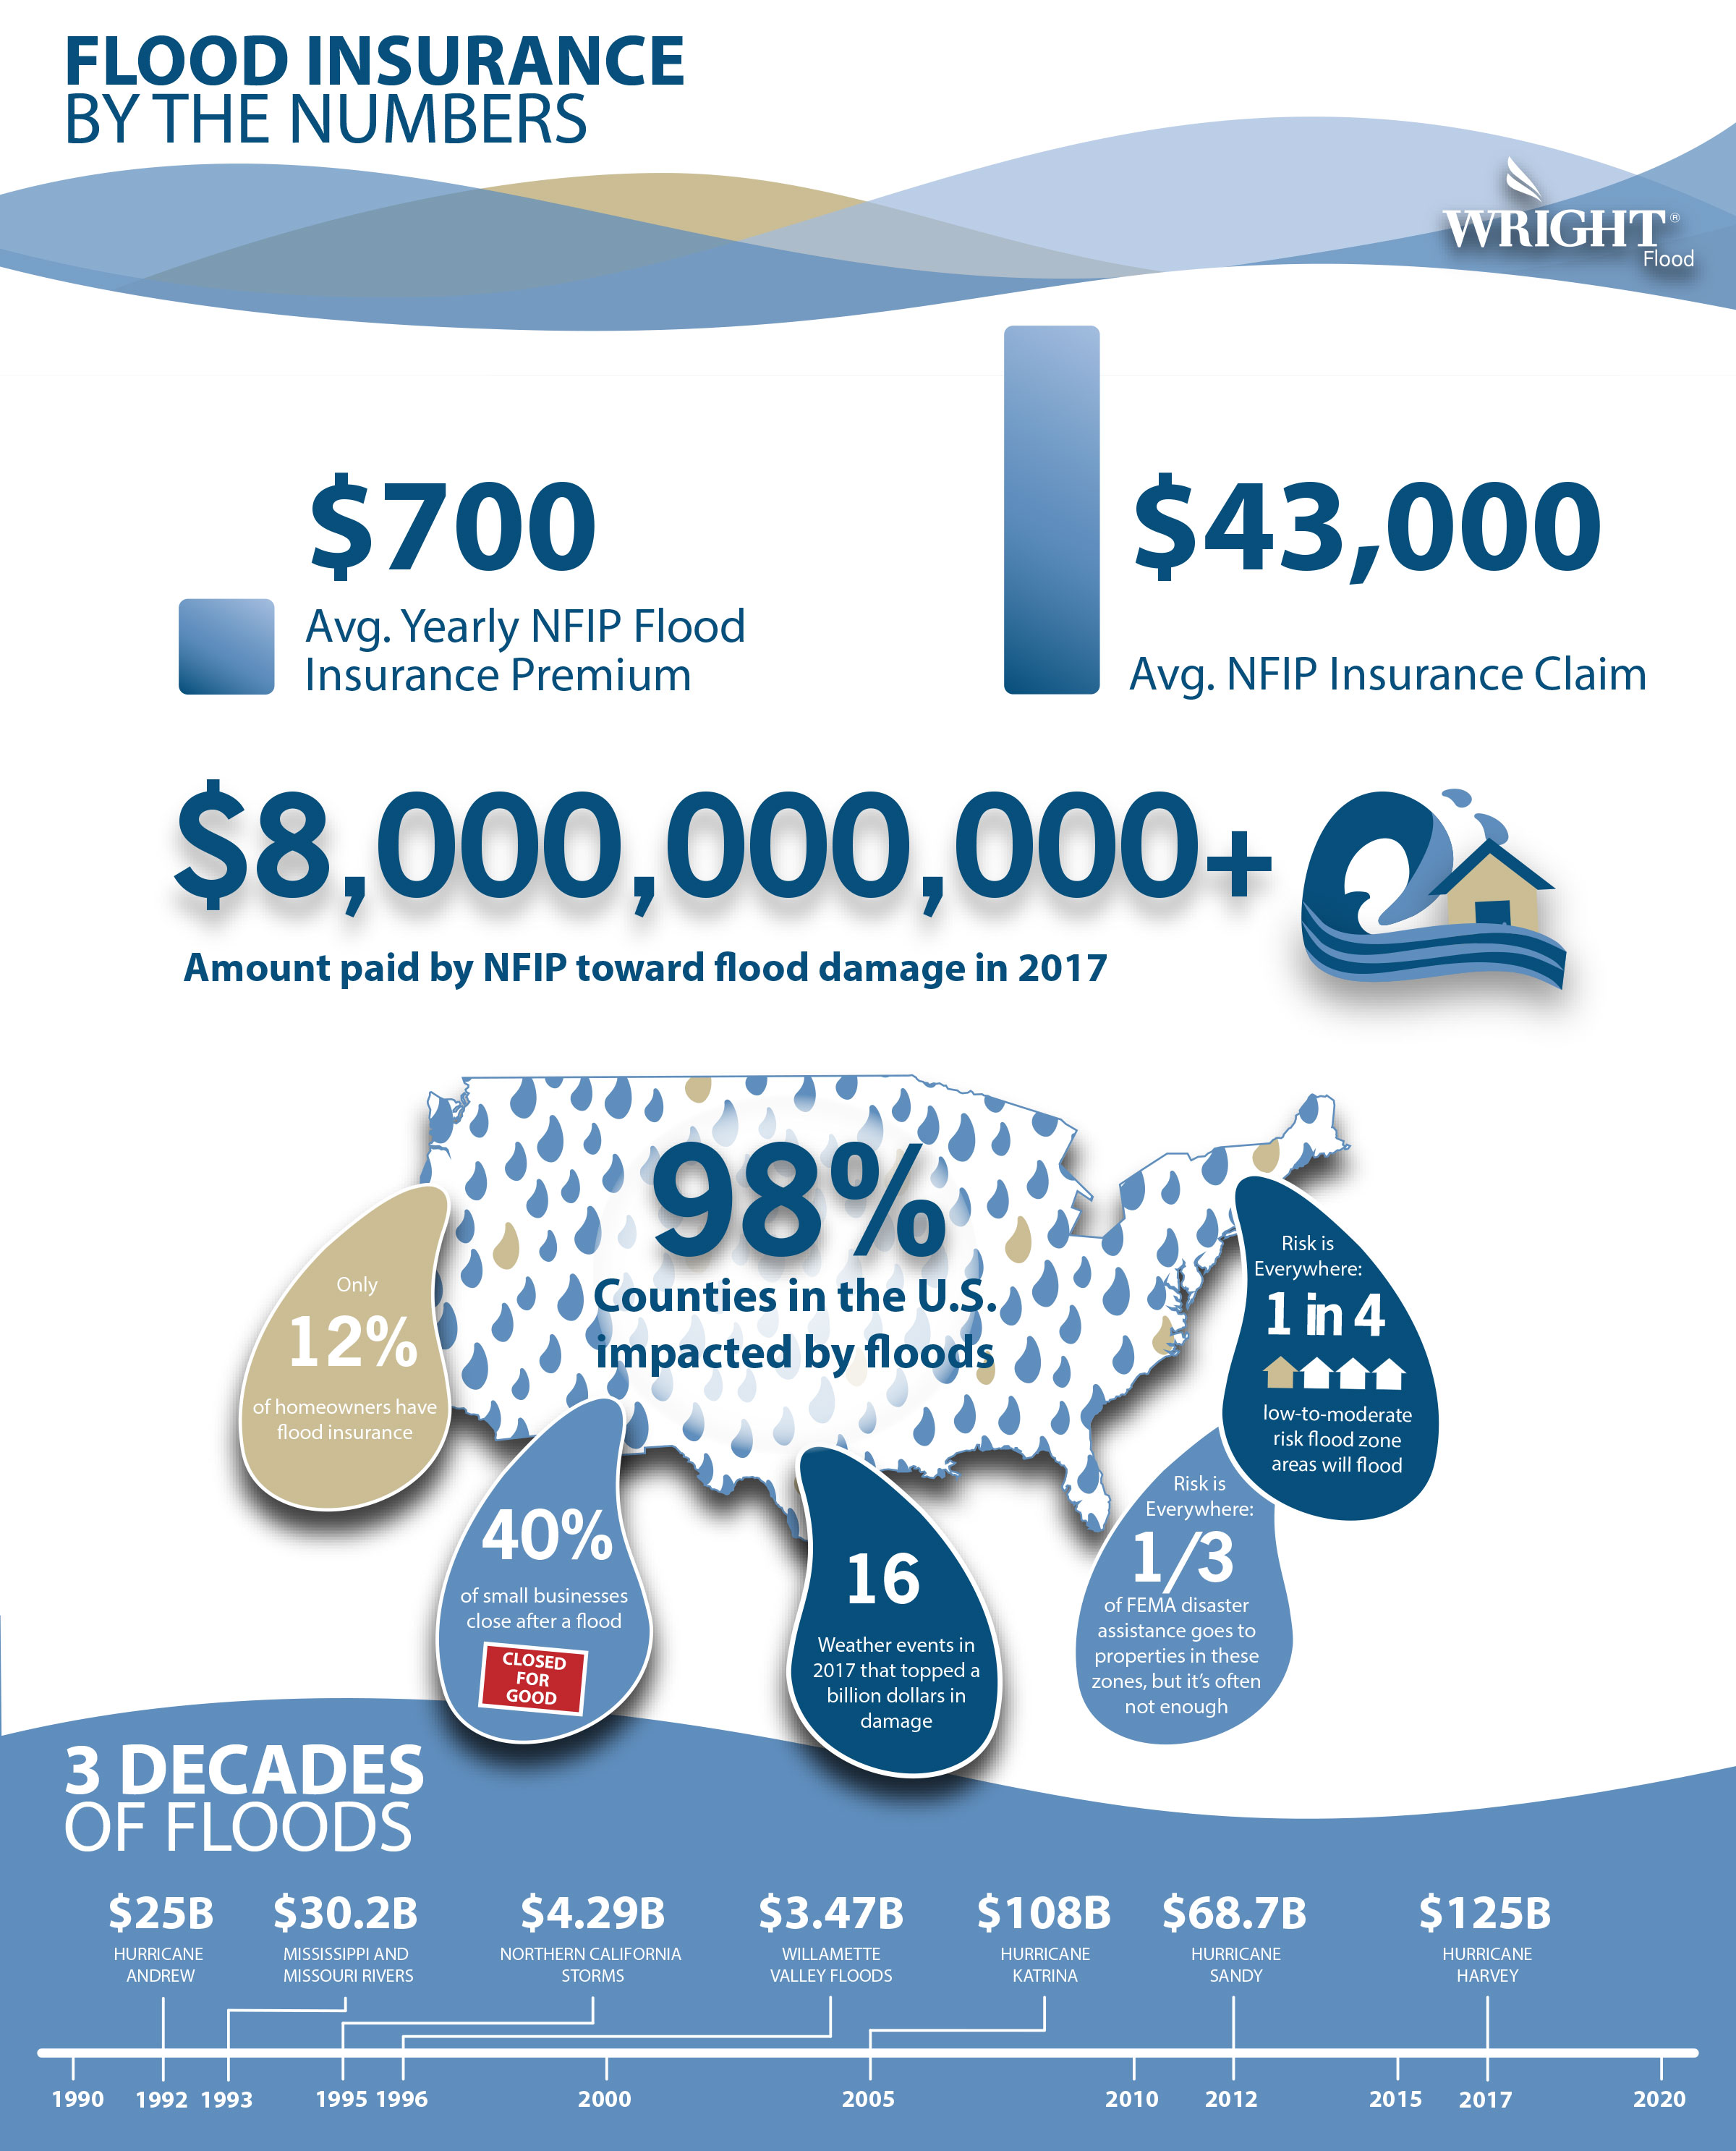 Wright-Flood-Flood-Insurance-by-the-Numbers-Infographic